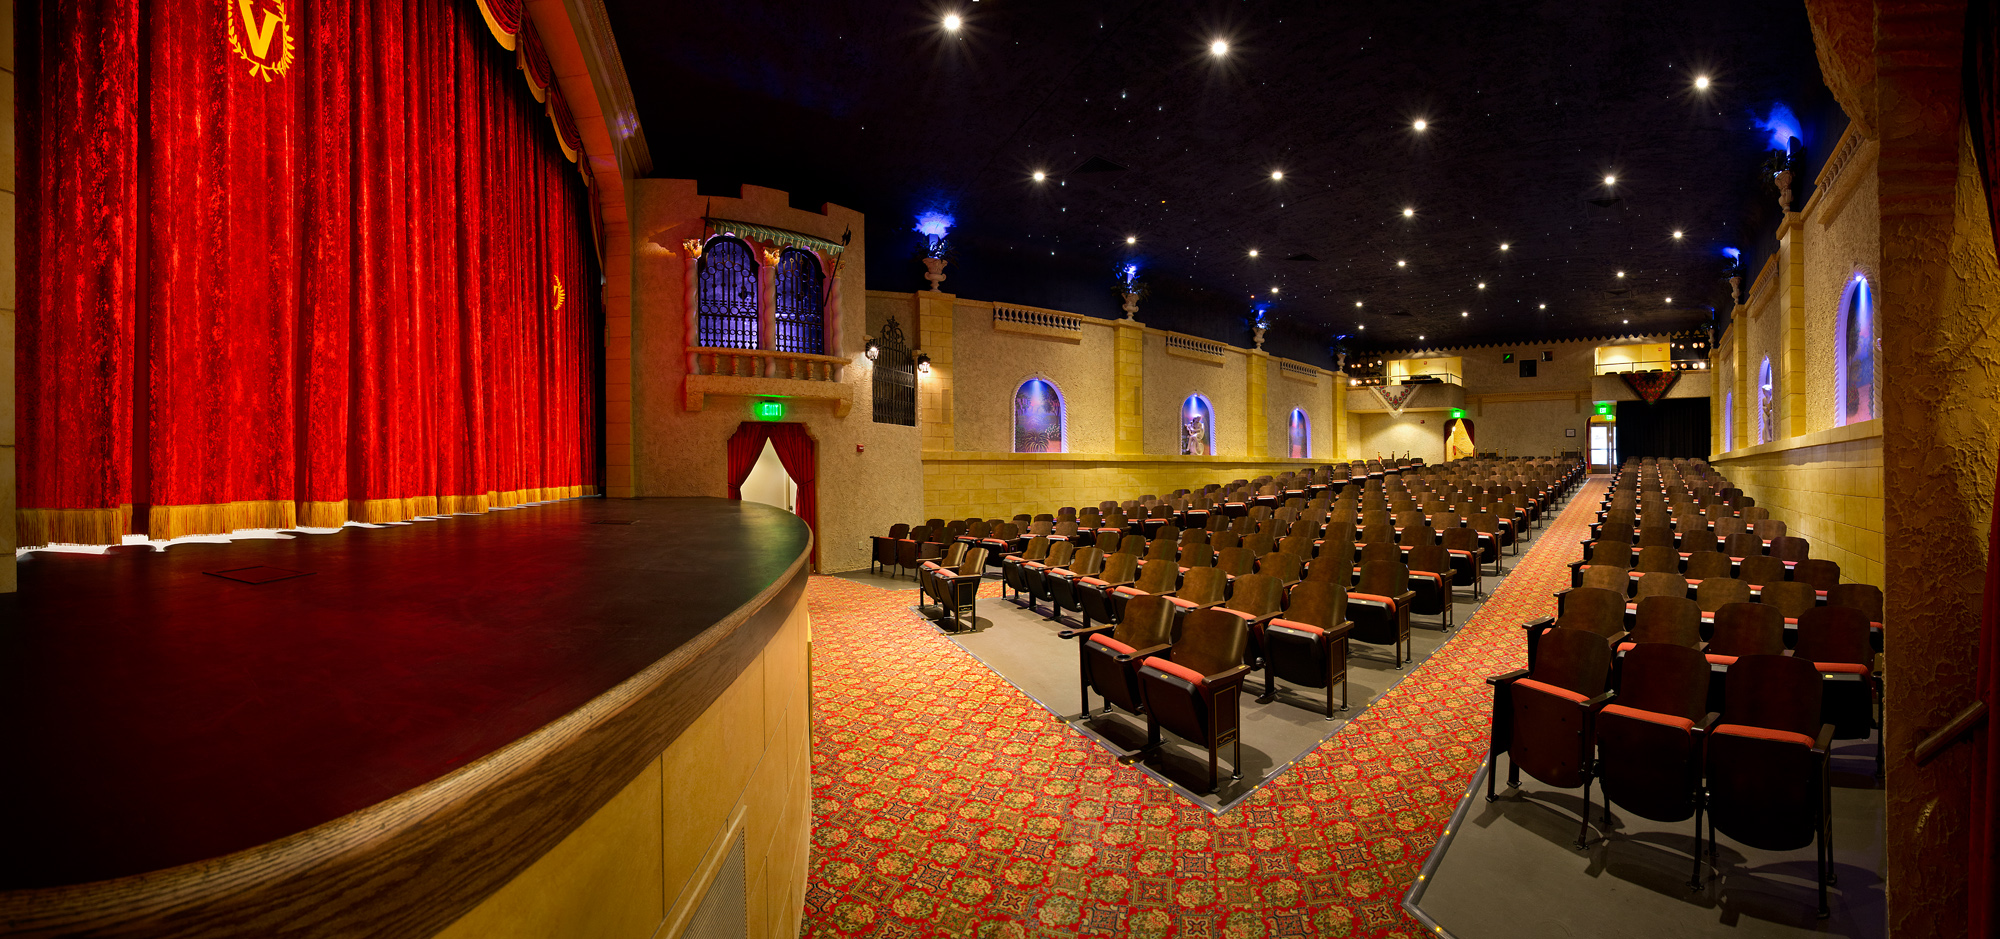 The Tivoli Theater Restored